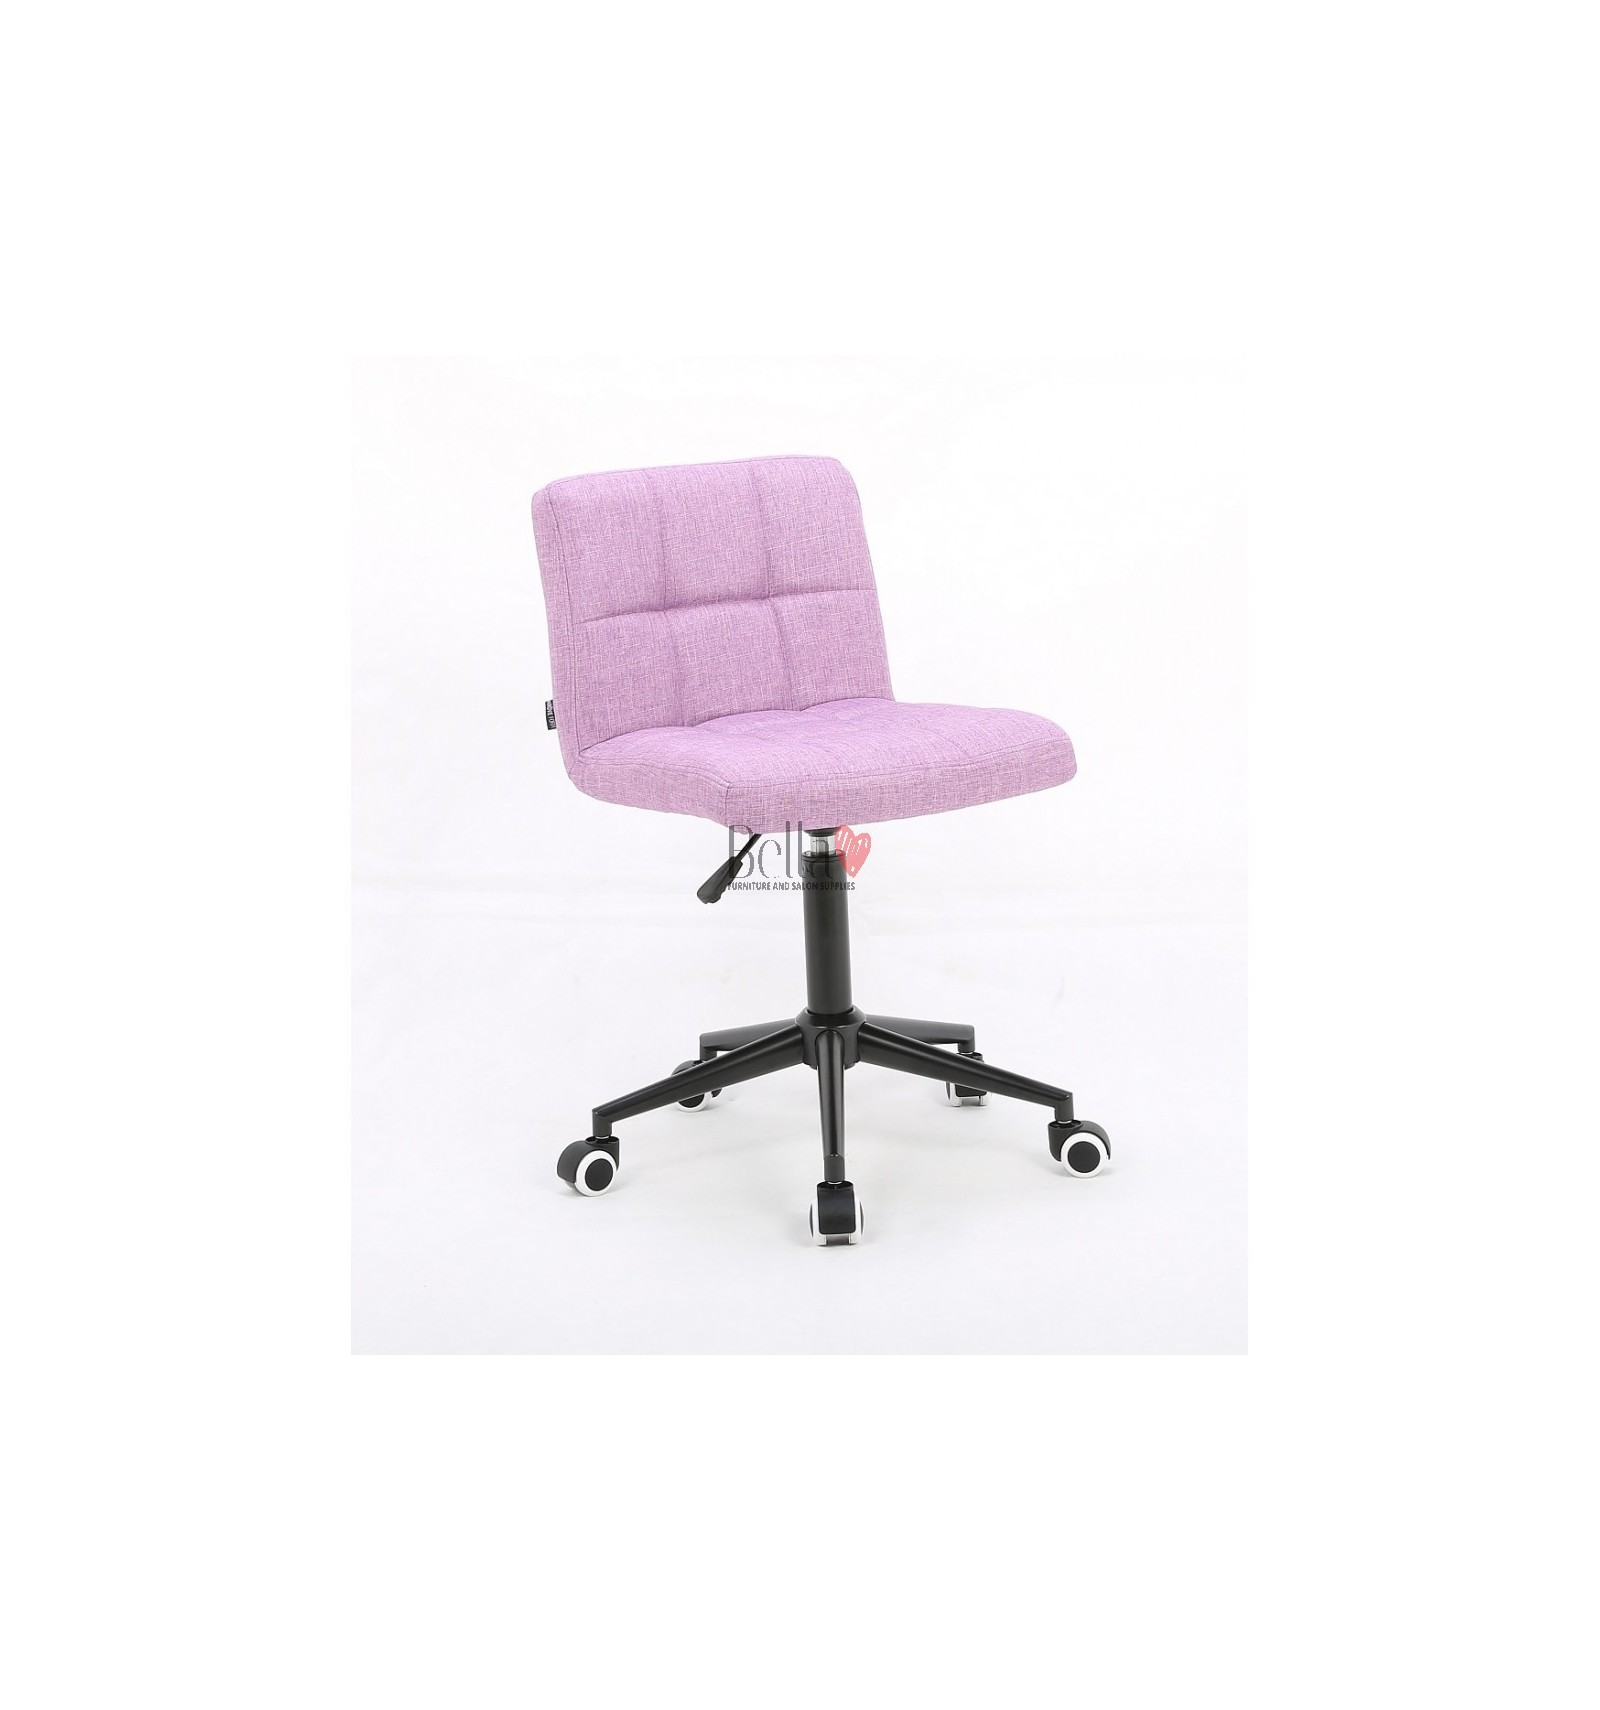 Hroove Salon Chair On Wheels Pink Chairs Hr1015k